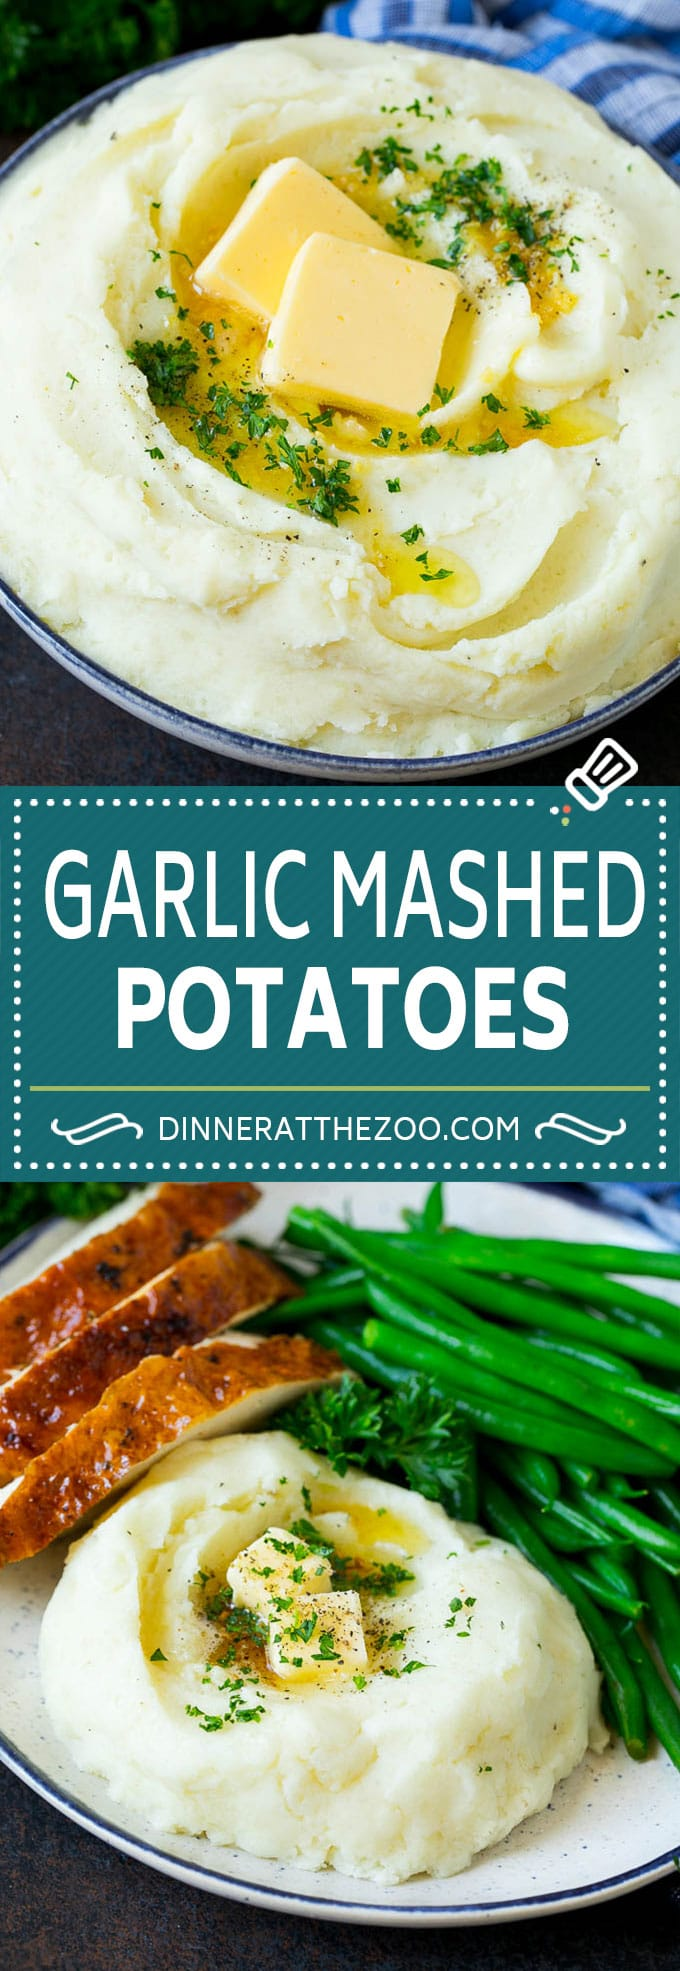 Garlic Mashed Potatoes Recipe #garlic #potatoes #mashedpotatoes #sidedish #dinner #thanksgiving #dinneratthezoo